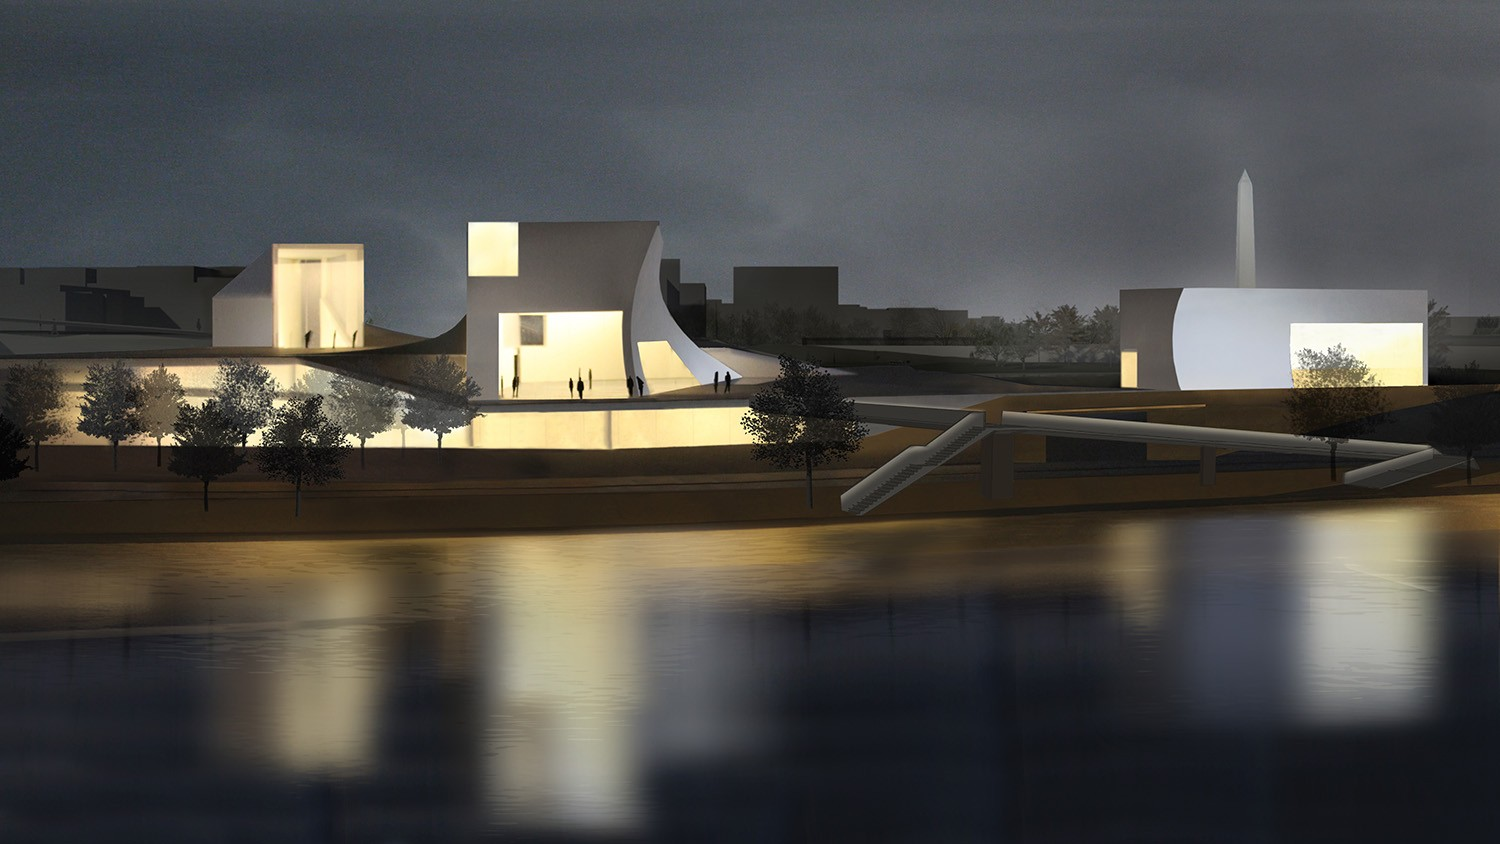 https://s3.us-east-2.amazonaws.com/steven-holl/uploads/projects/project-images/StevenHollArchitects_JFK_RiverPavilion_Performance_night_WH.jpg